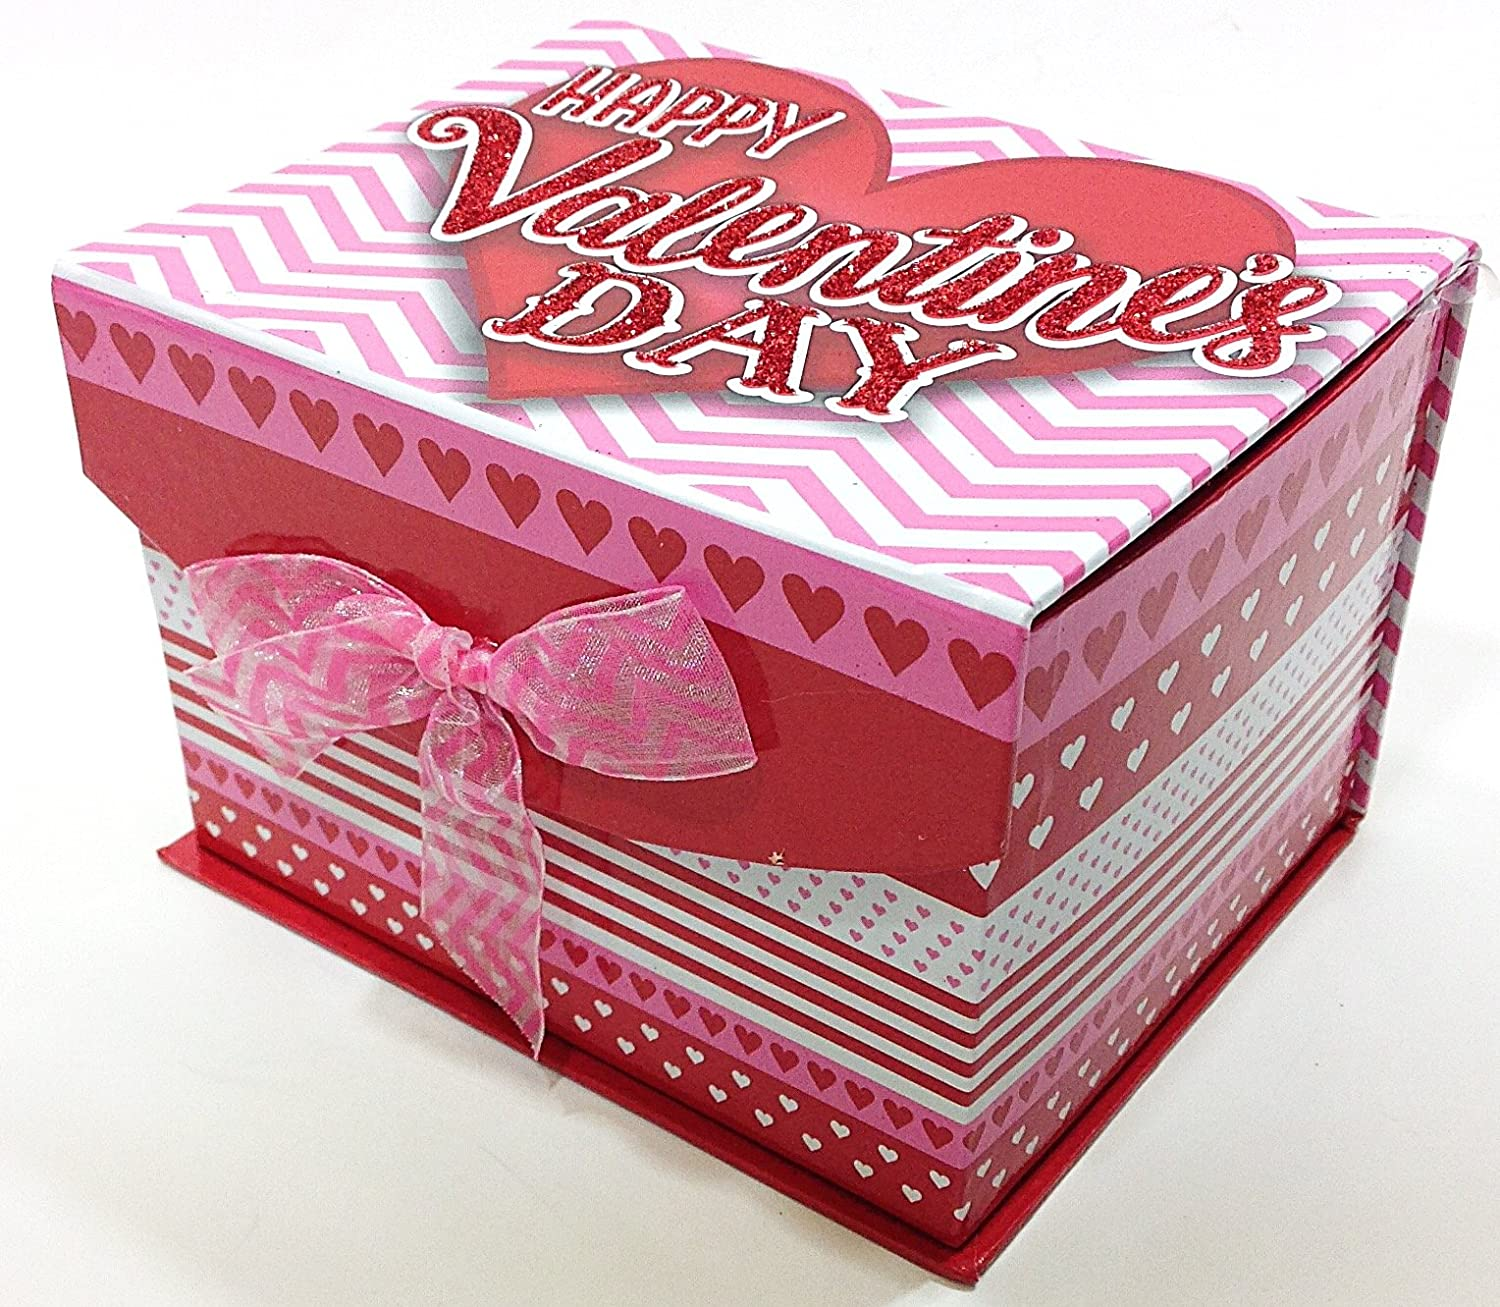 Amazon.com : Happy Valentines Day Gift Box - Lindt Lindor Truffles ...